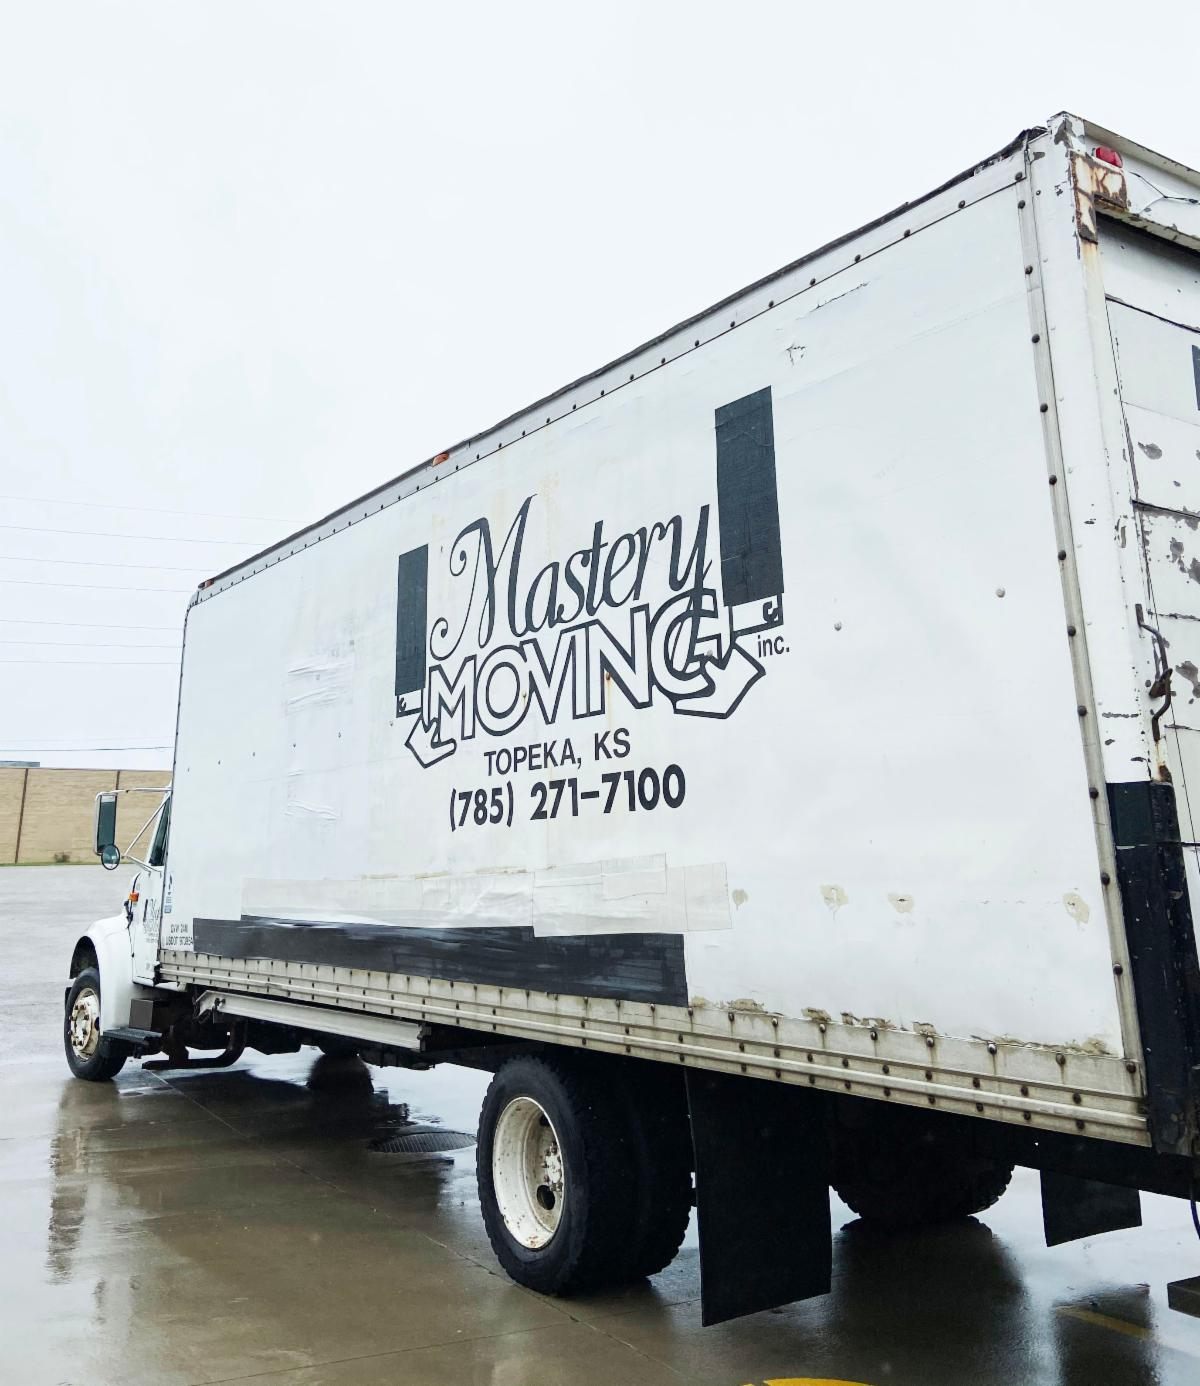 A moving van outside from Mastery Movers